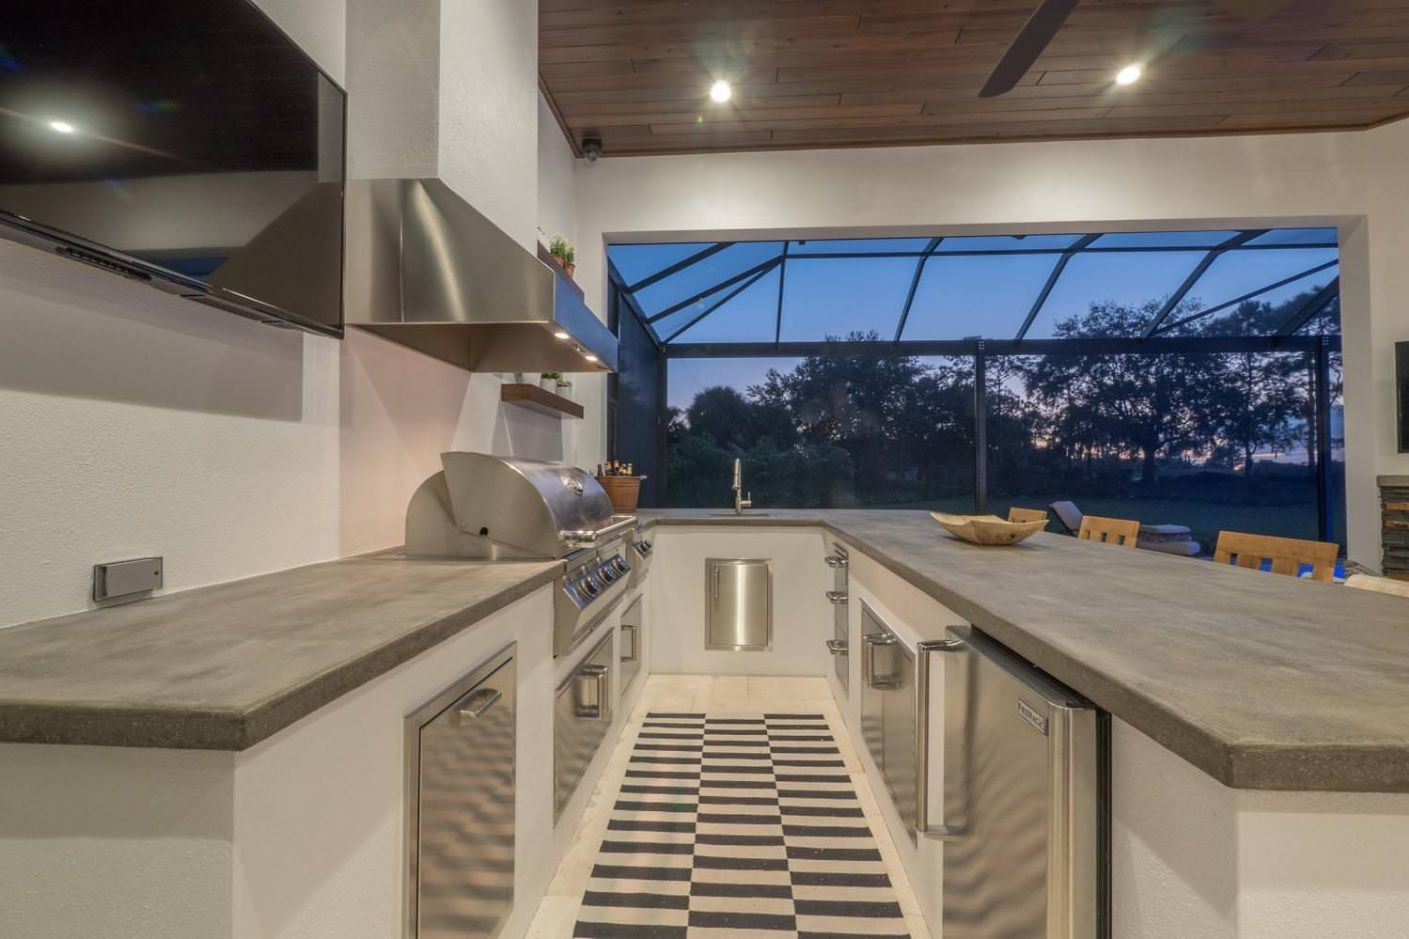 DIY Pouring Concrete Countertops. Interior Usage, Photos, Ideas. Futuristic and hi-tech styled within one modern house layout with latticed panoramic window